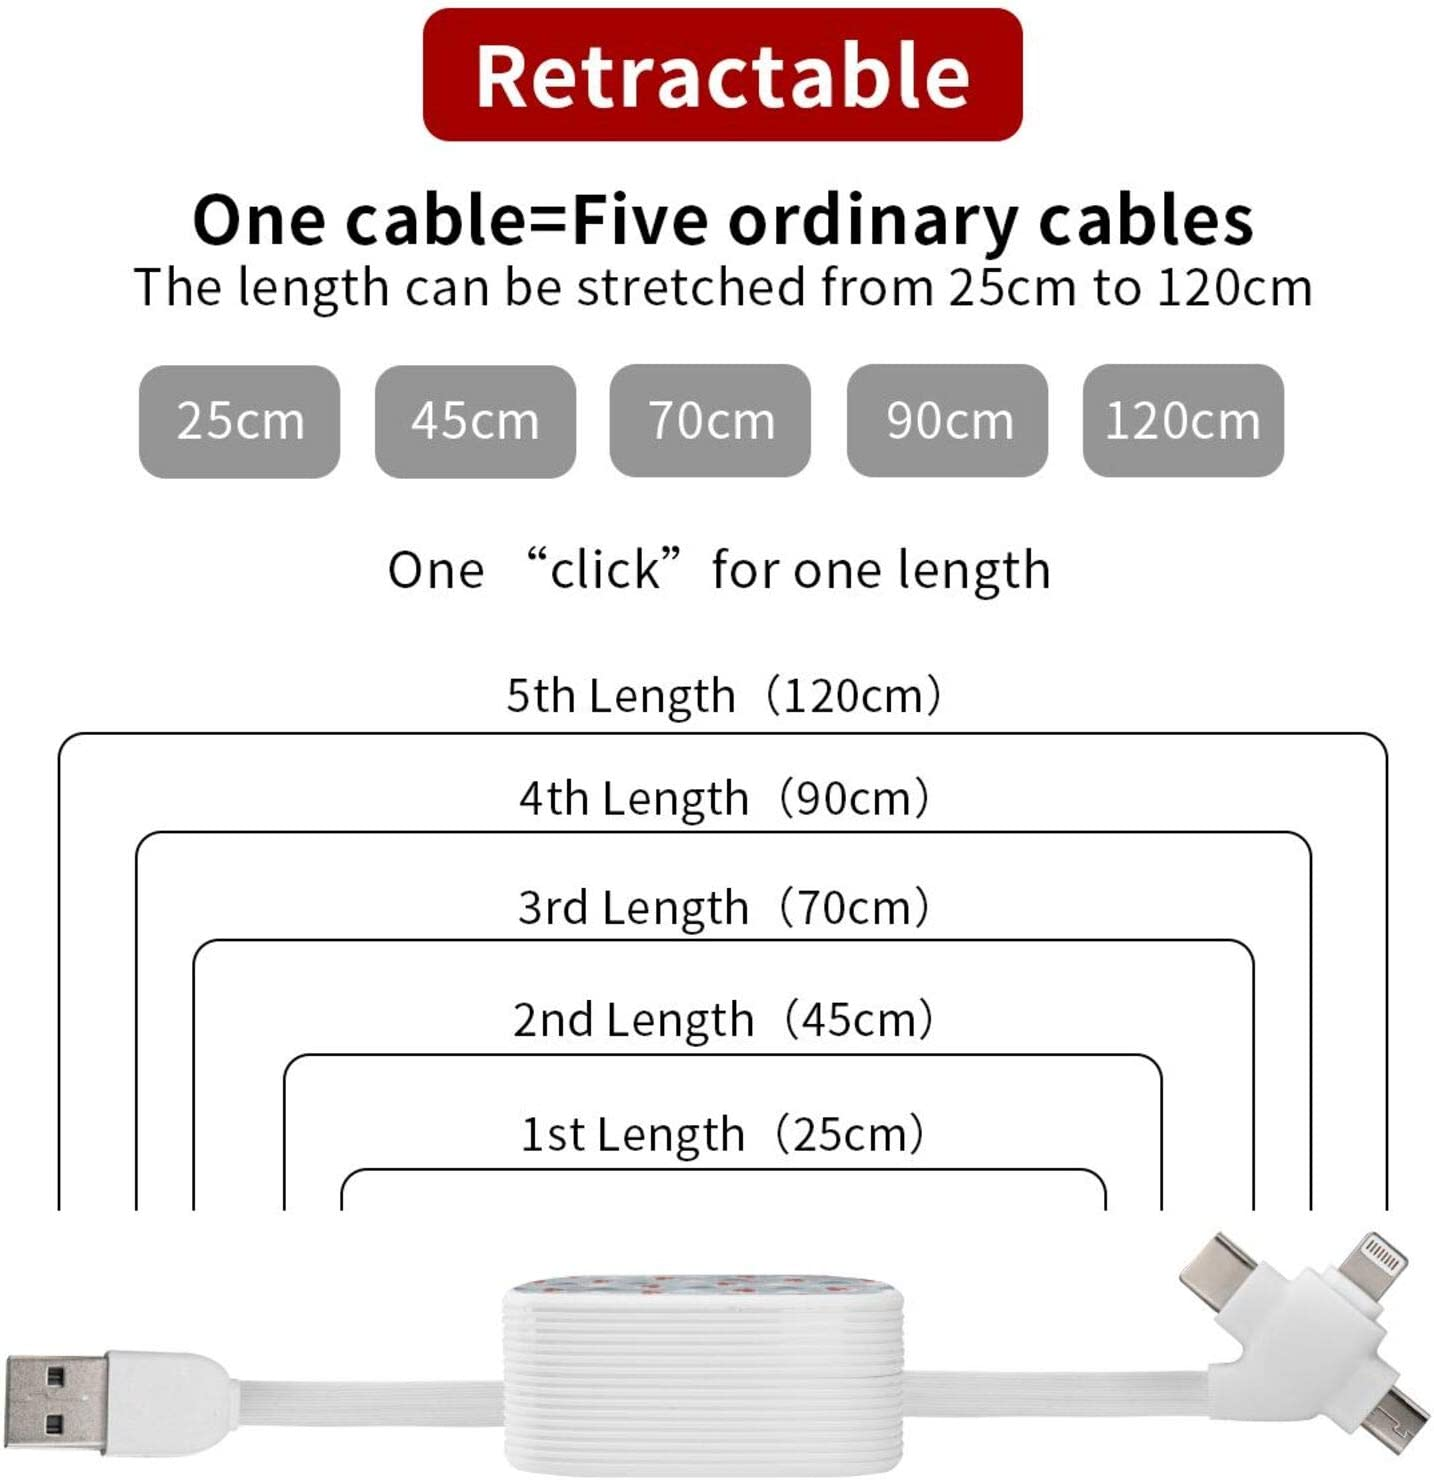 Fir Trees and Snowflakesthe Square Three-in-One USB Cable is A Universal Interface Charging Cable Suitable for Various Mobile Phones and Tablets Snowman